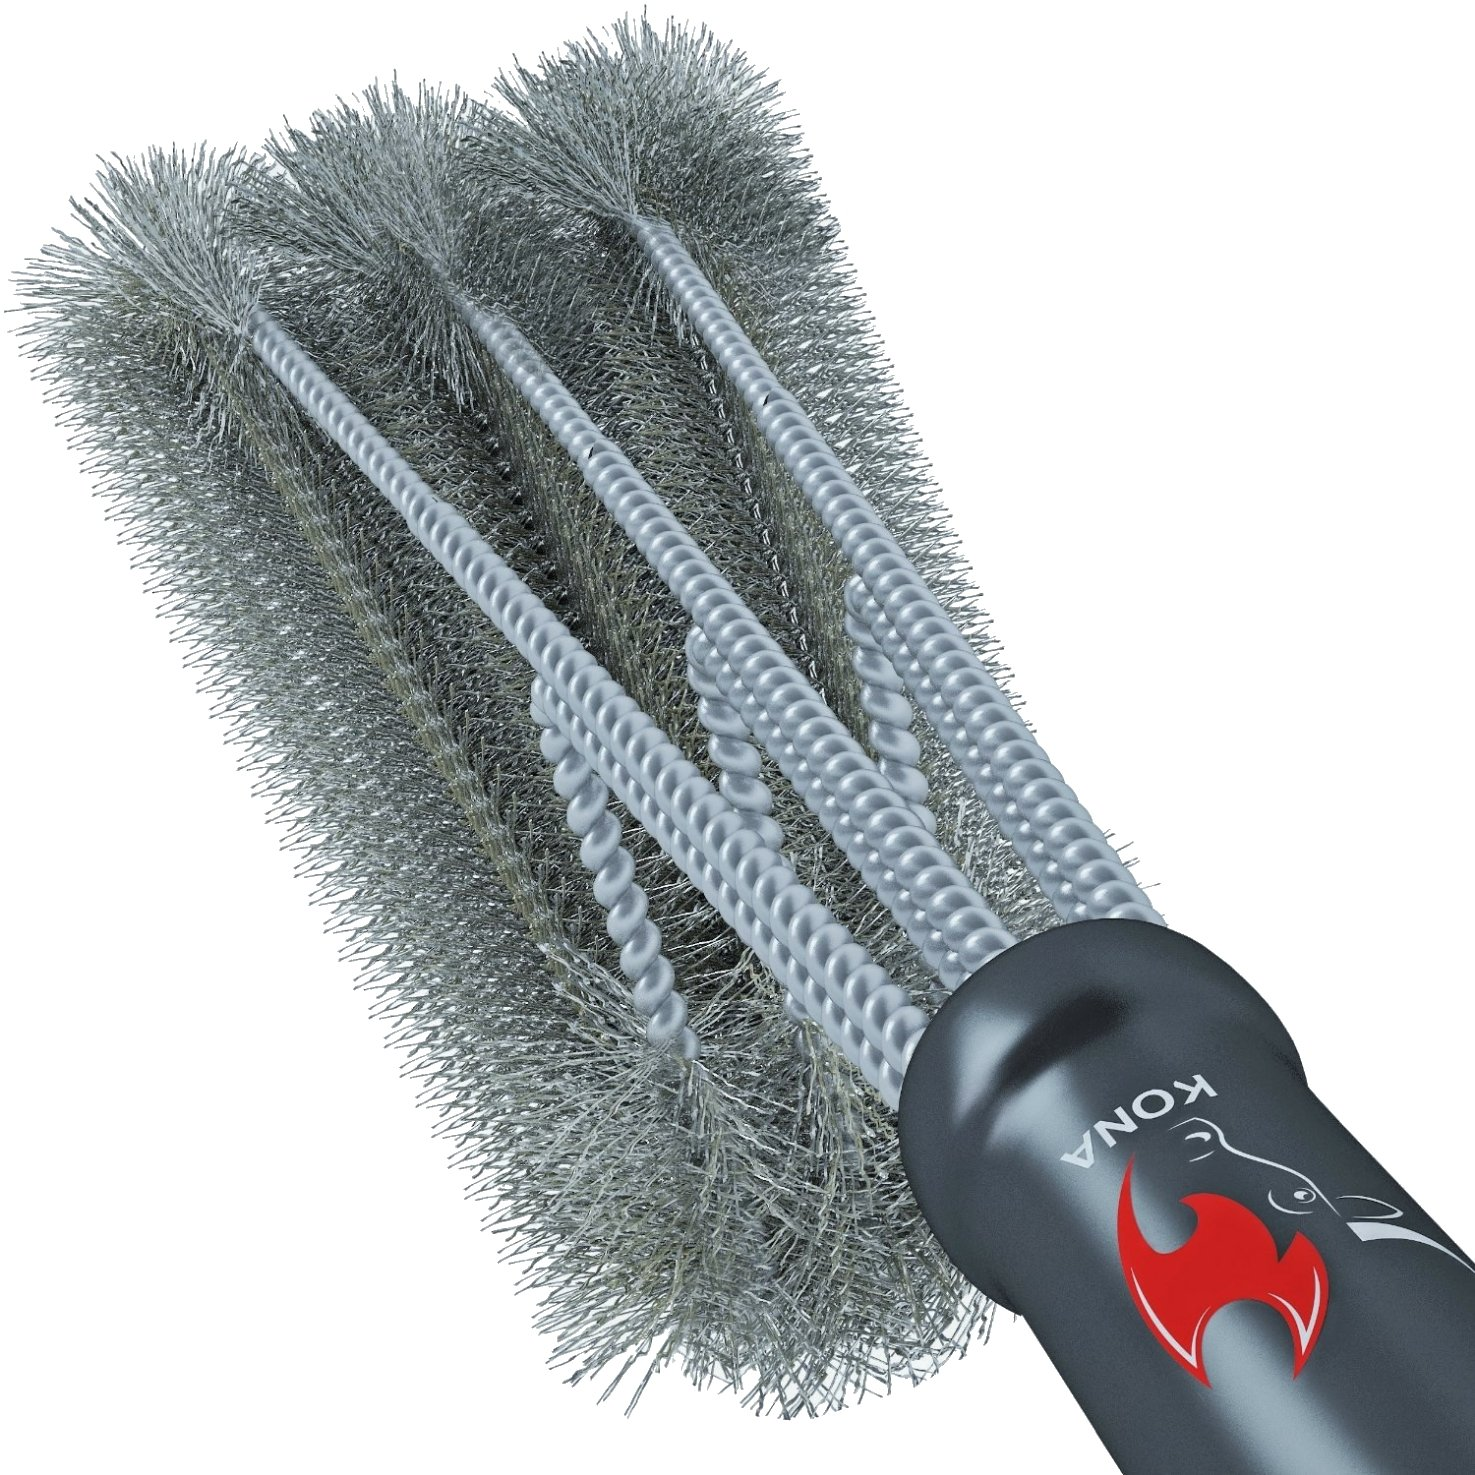 360° CLEAN GRILL BRUSH By Kona(TM) - 18 Best BBQ Grill Brush - 3 Stainless Steel Brushes In 1 Provides Effortless Cleaning - FREE 5 YEAR REPLACEMENT - Great BBQ Accessories Gift - Stiff Light Weight Design - Perfect For Weber, Char-Broil, Porcelain & I